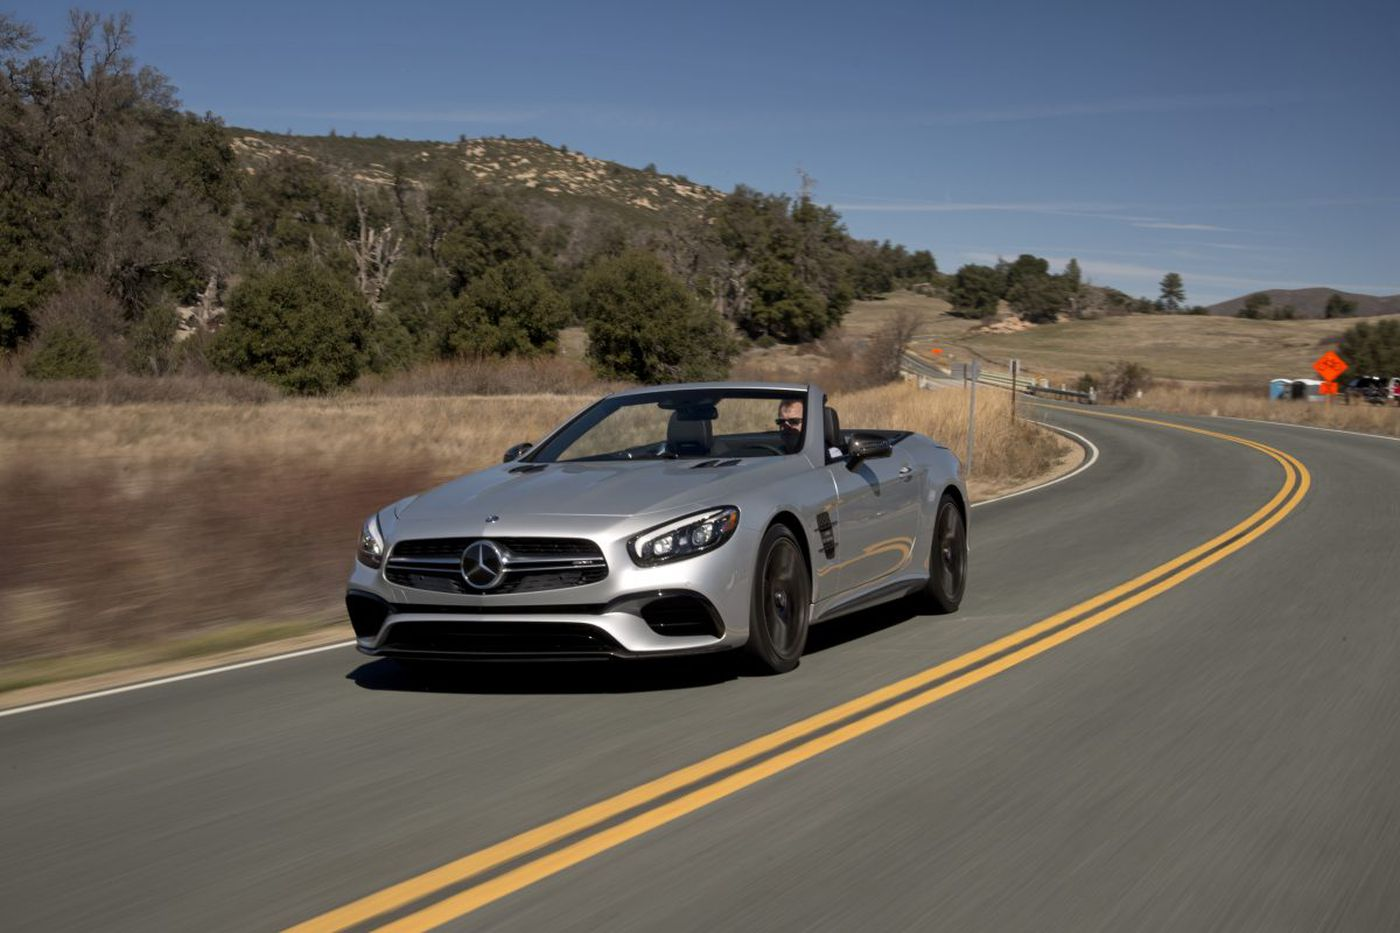 2017 Mercedes AMG SL63 is a high-performance, luxury roadster